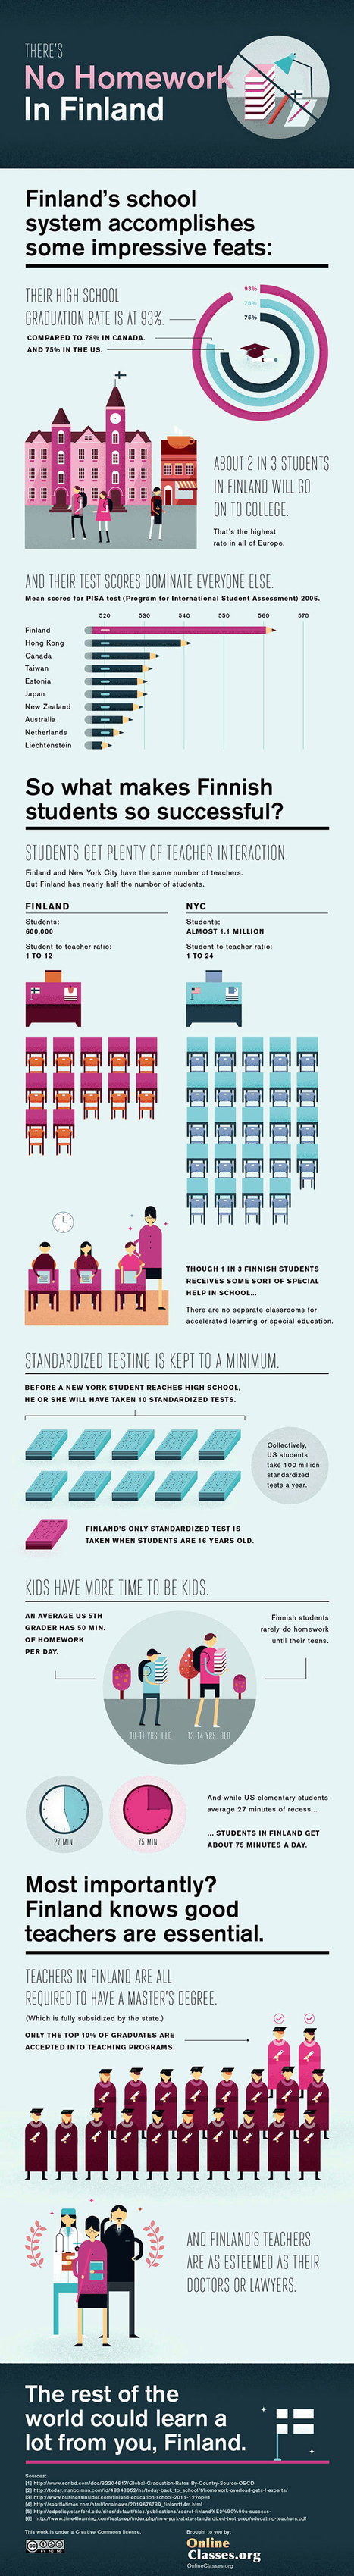 Finland's School System - Infographic | Educational trends | Scoop.it